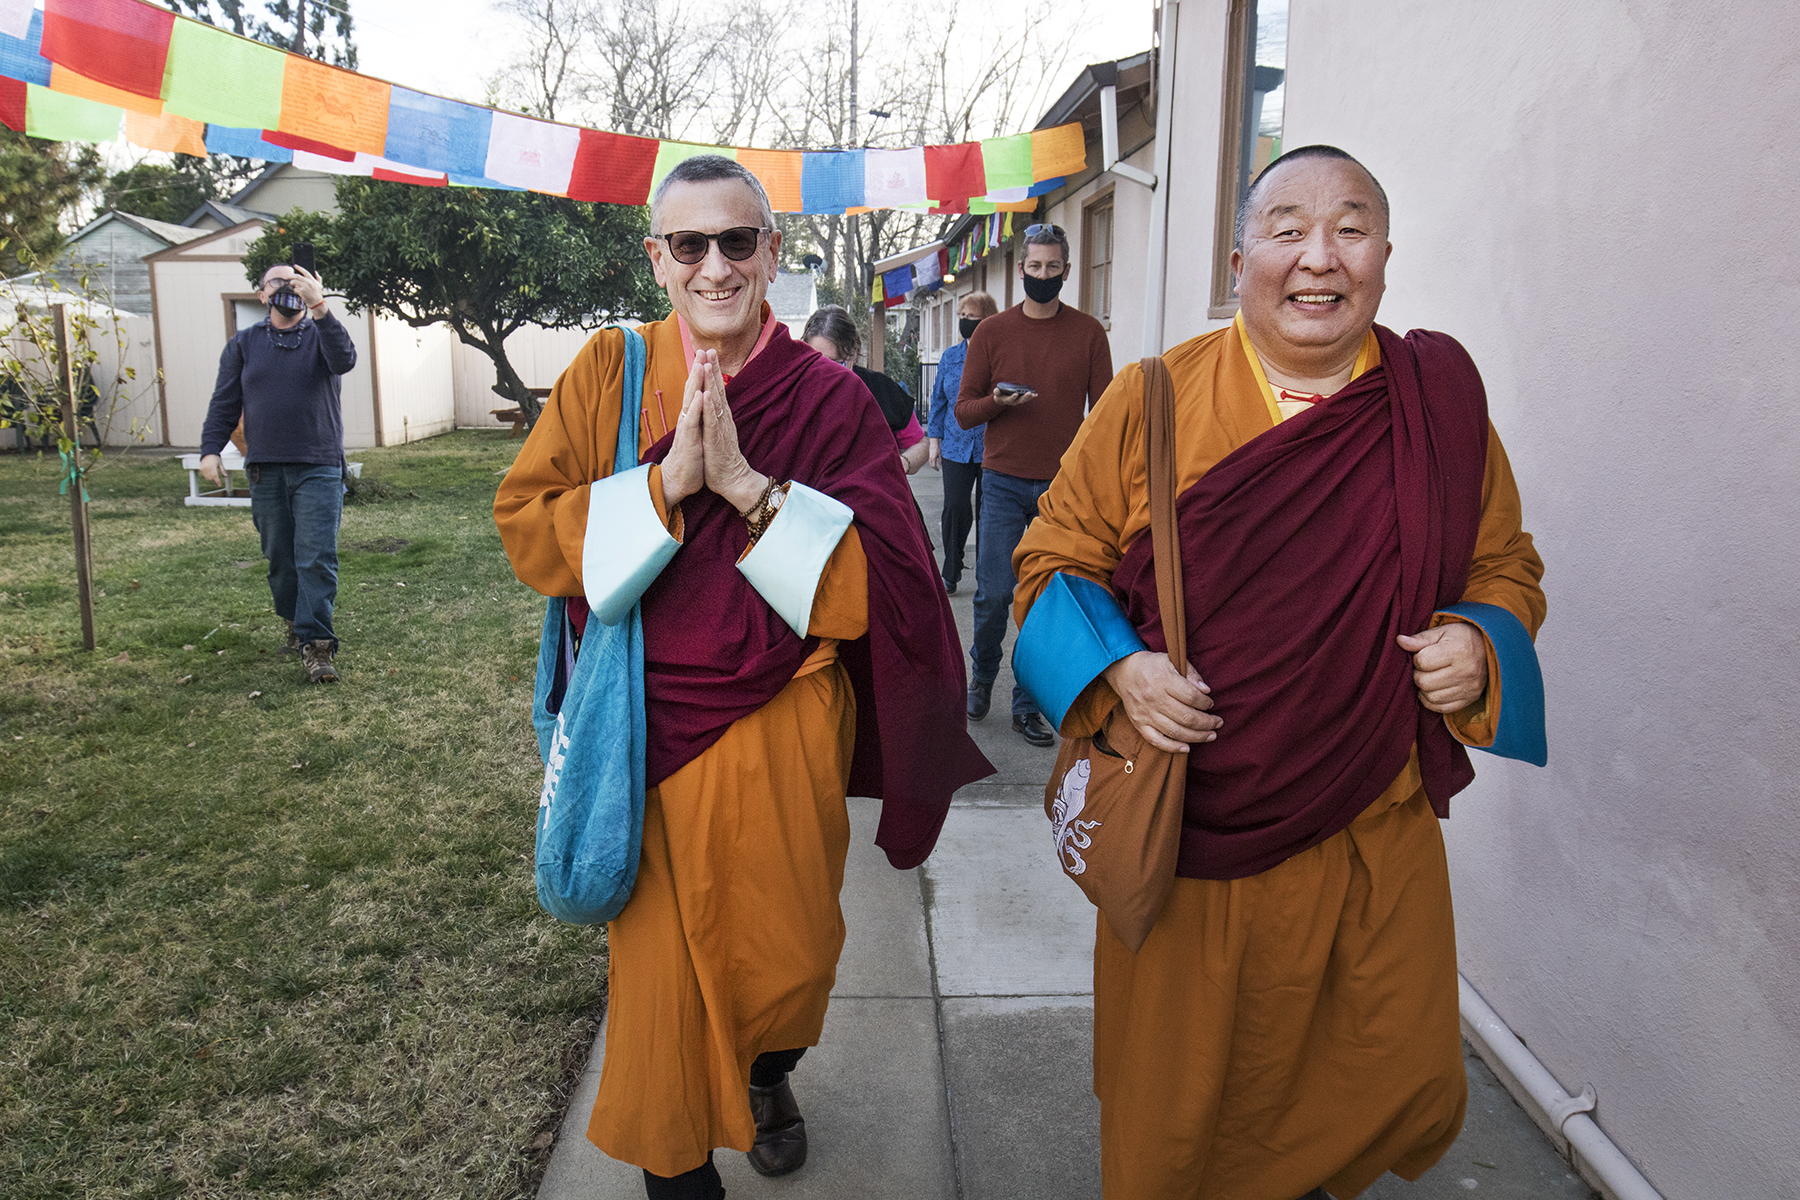 Lama Yeshe Jinpa and Geshe Damchoebaazar Gurjav in mongolian robes during losar 2021 celebration